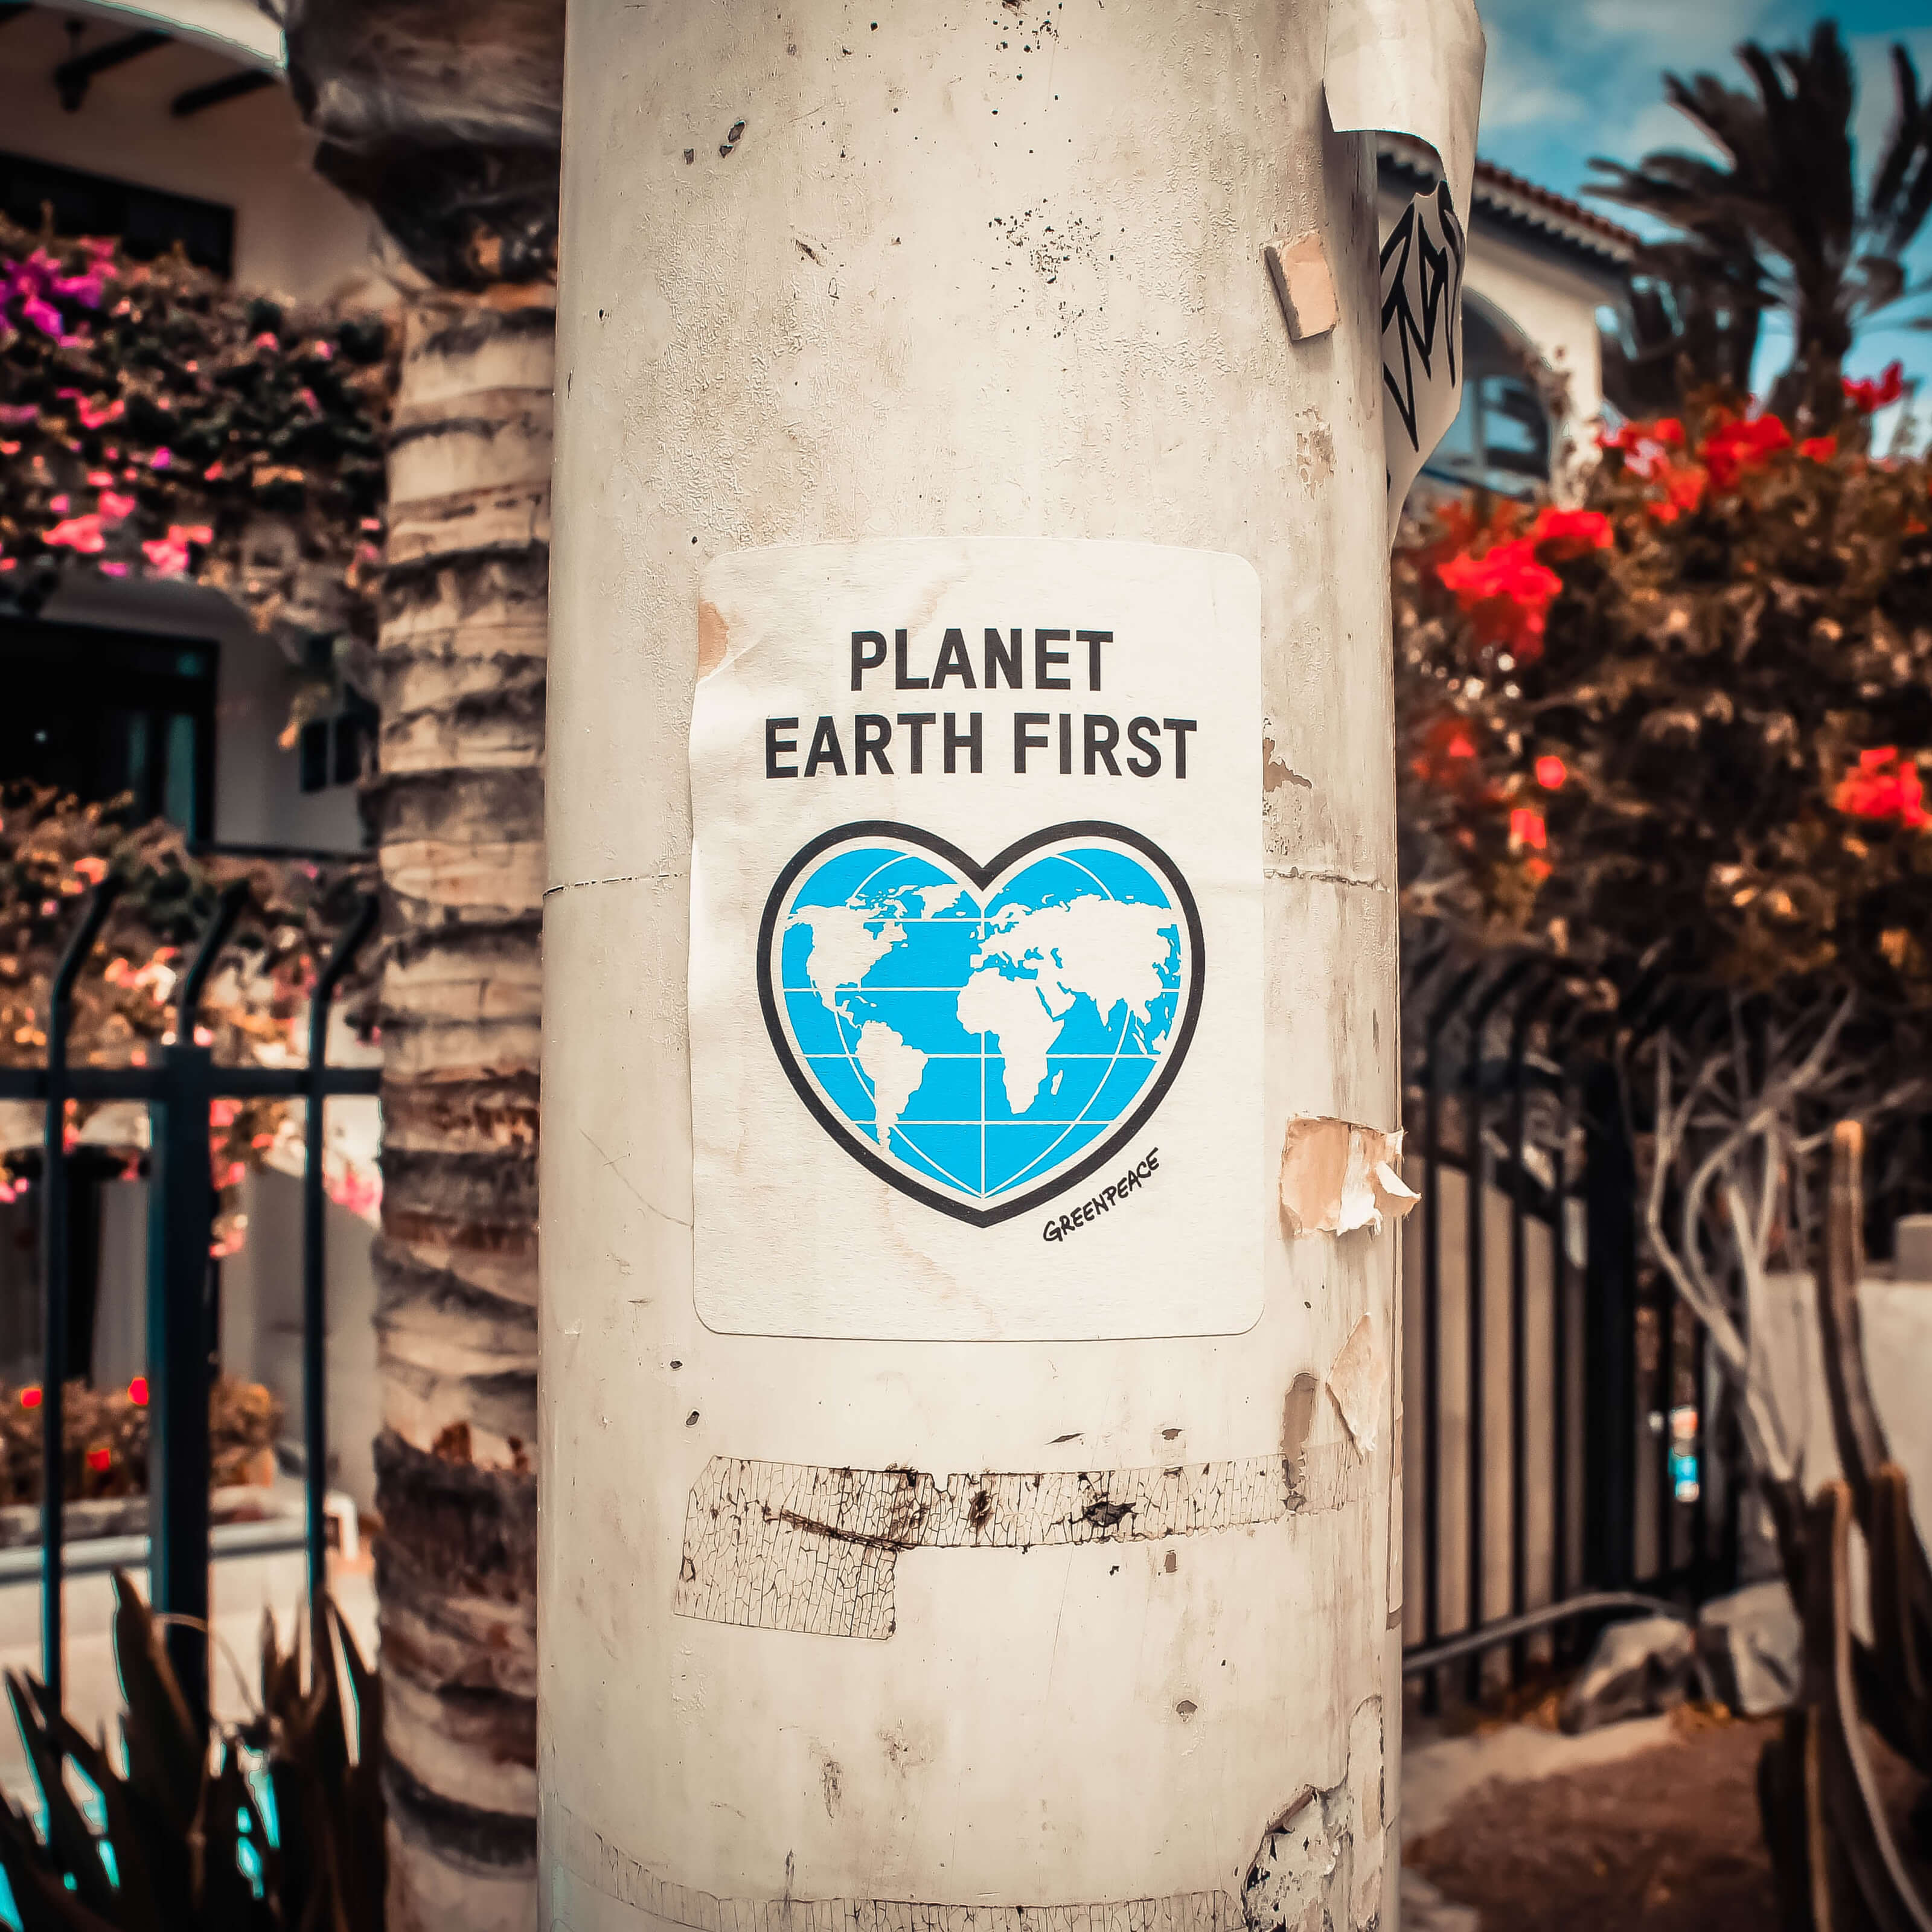 planet earth first greenpeace poster